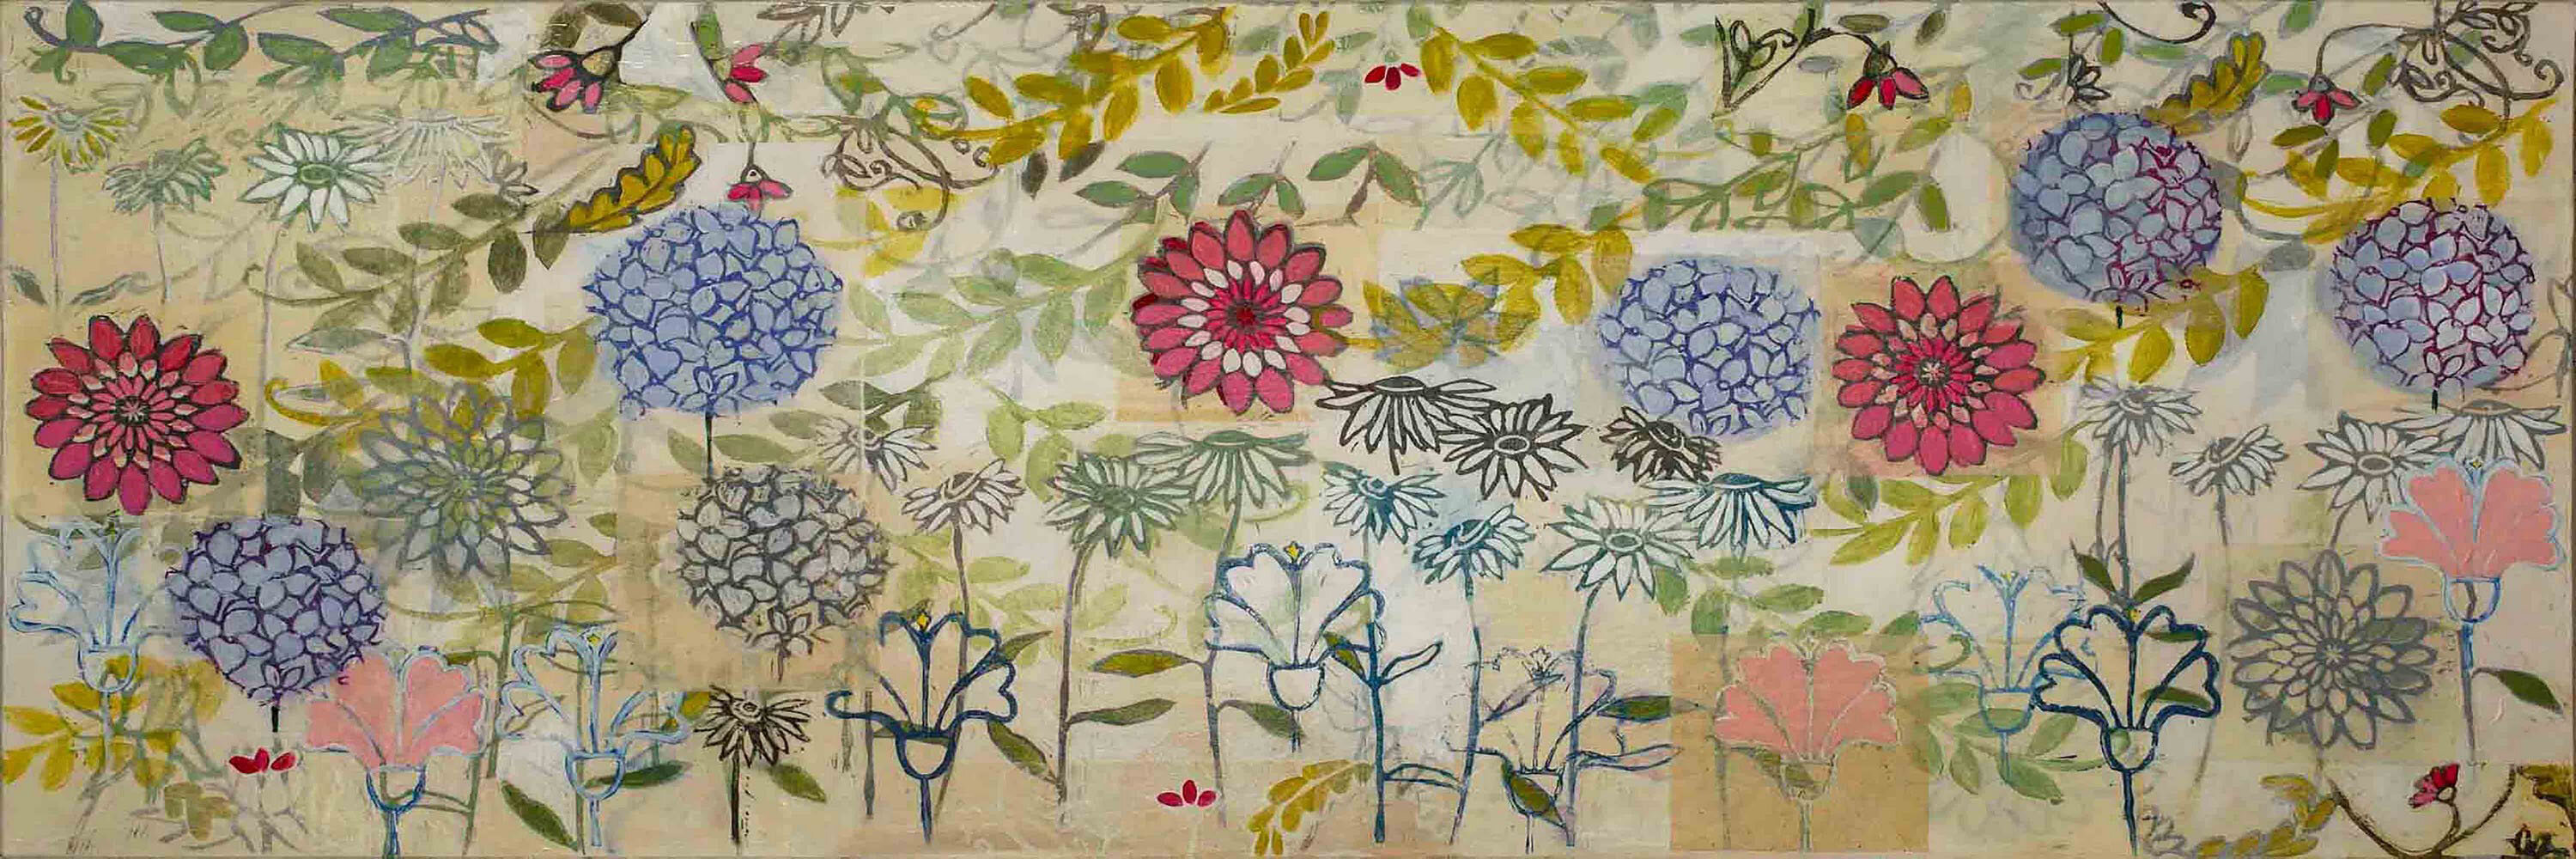 Gardens By Maria: Marmont Hill 'Spring Garden' By Maria Pezzano Painting